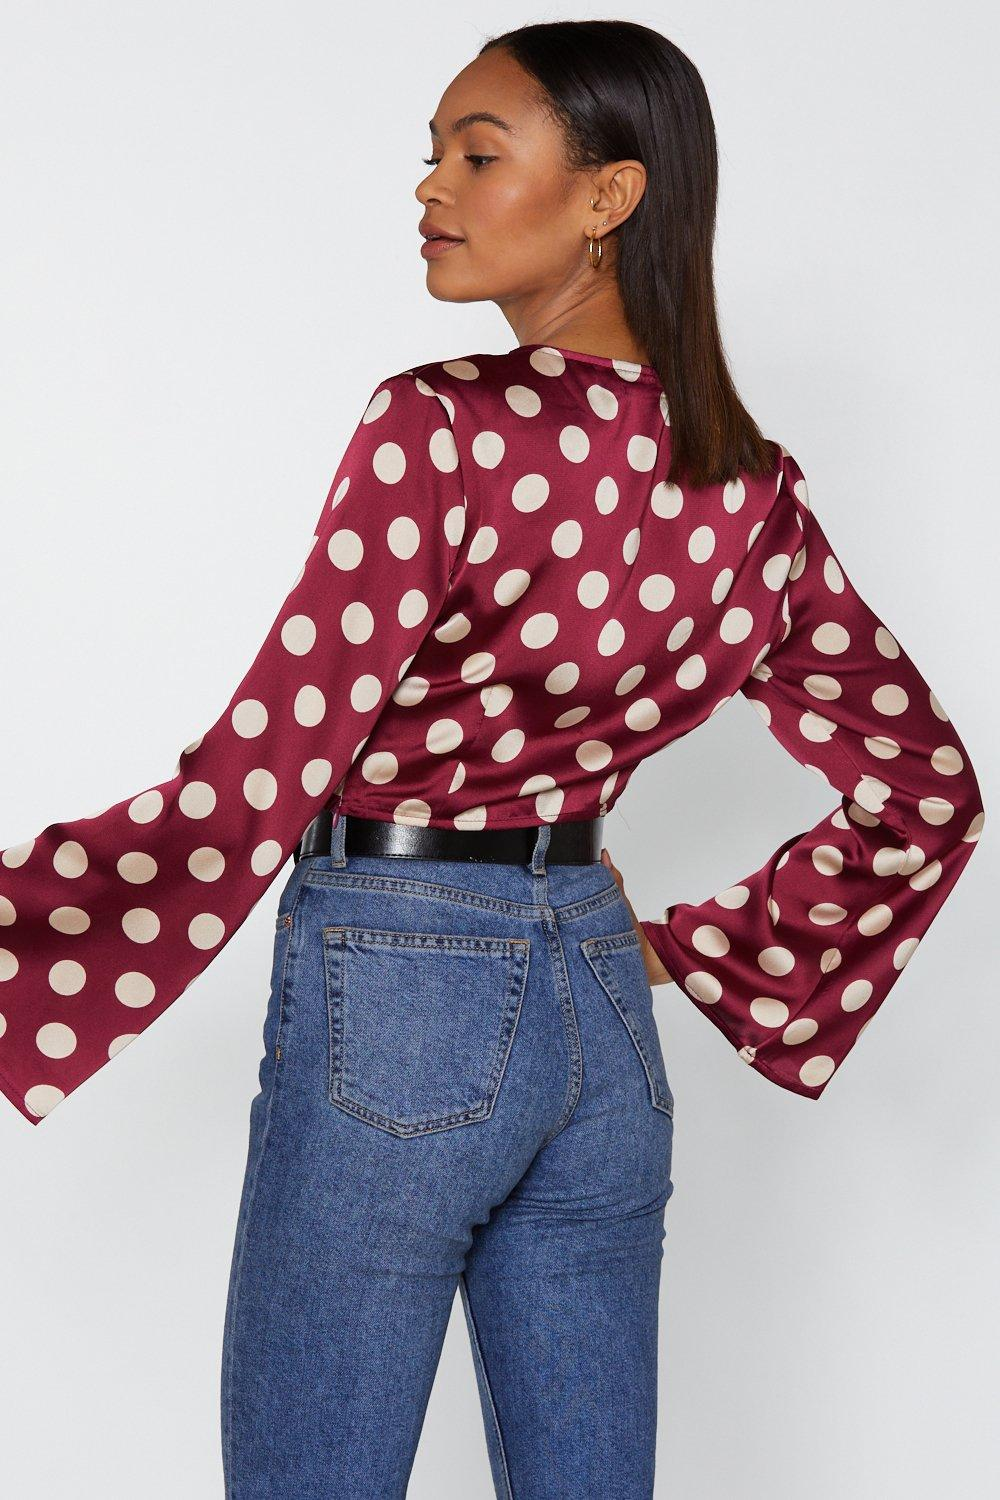 9930f847b0be2d Call the Dots Polka Dot Tie Top | Shop Clothes at Nasty Gal!